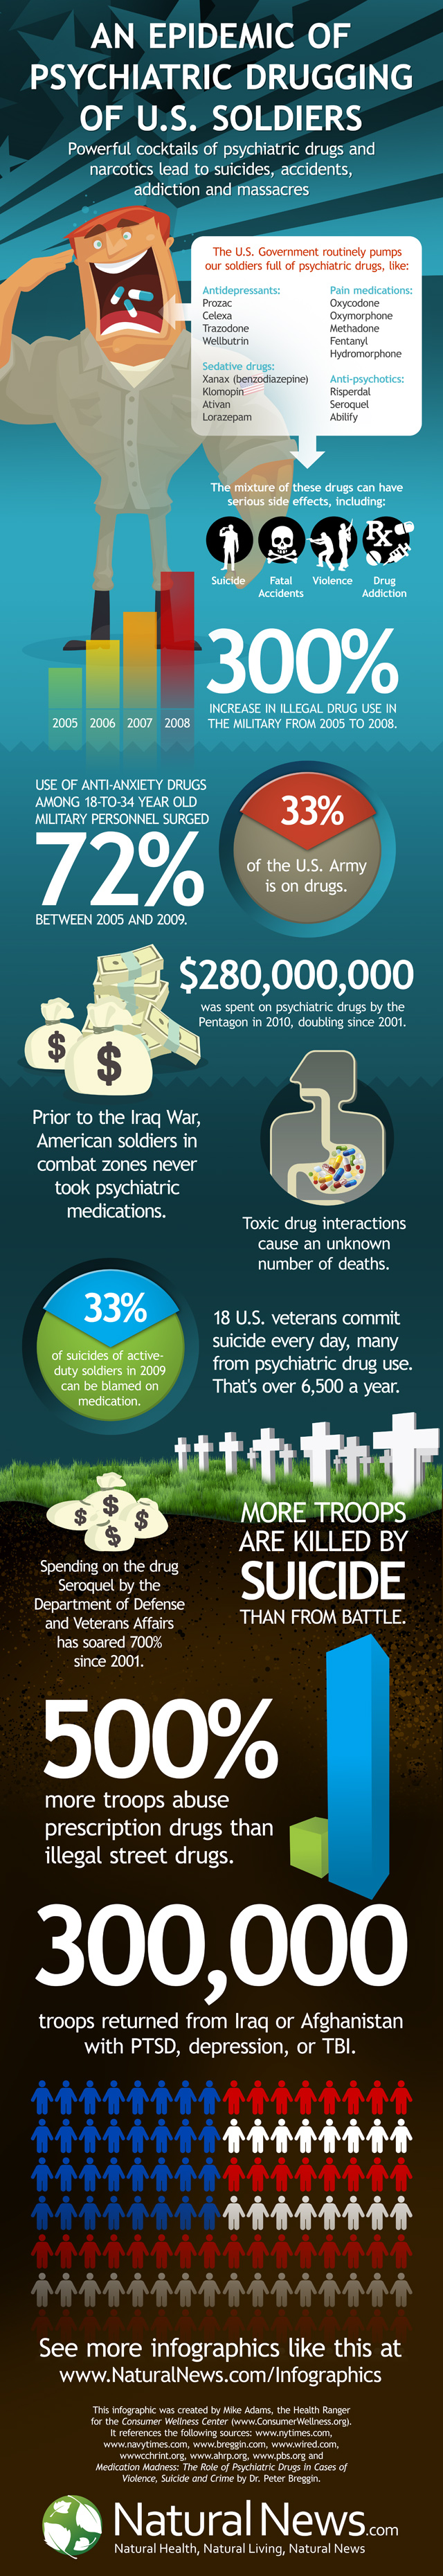 An Epidemic of Psychiatric Drugging of U.S. Soldiers by The Health Ranger